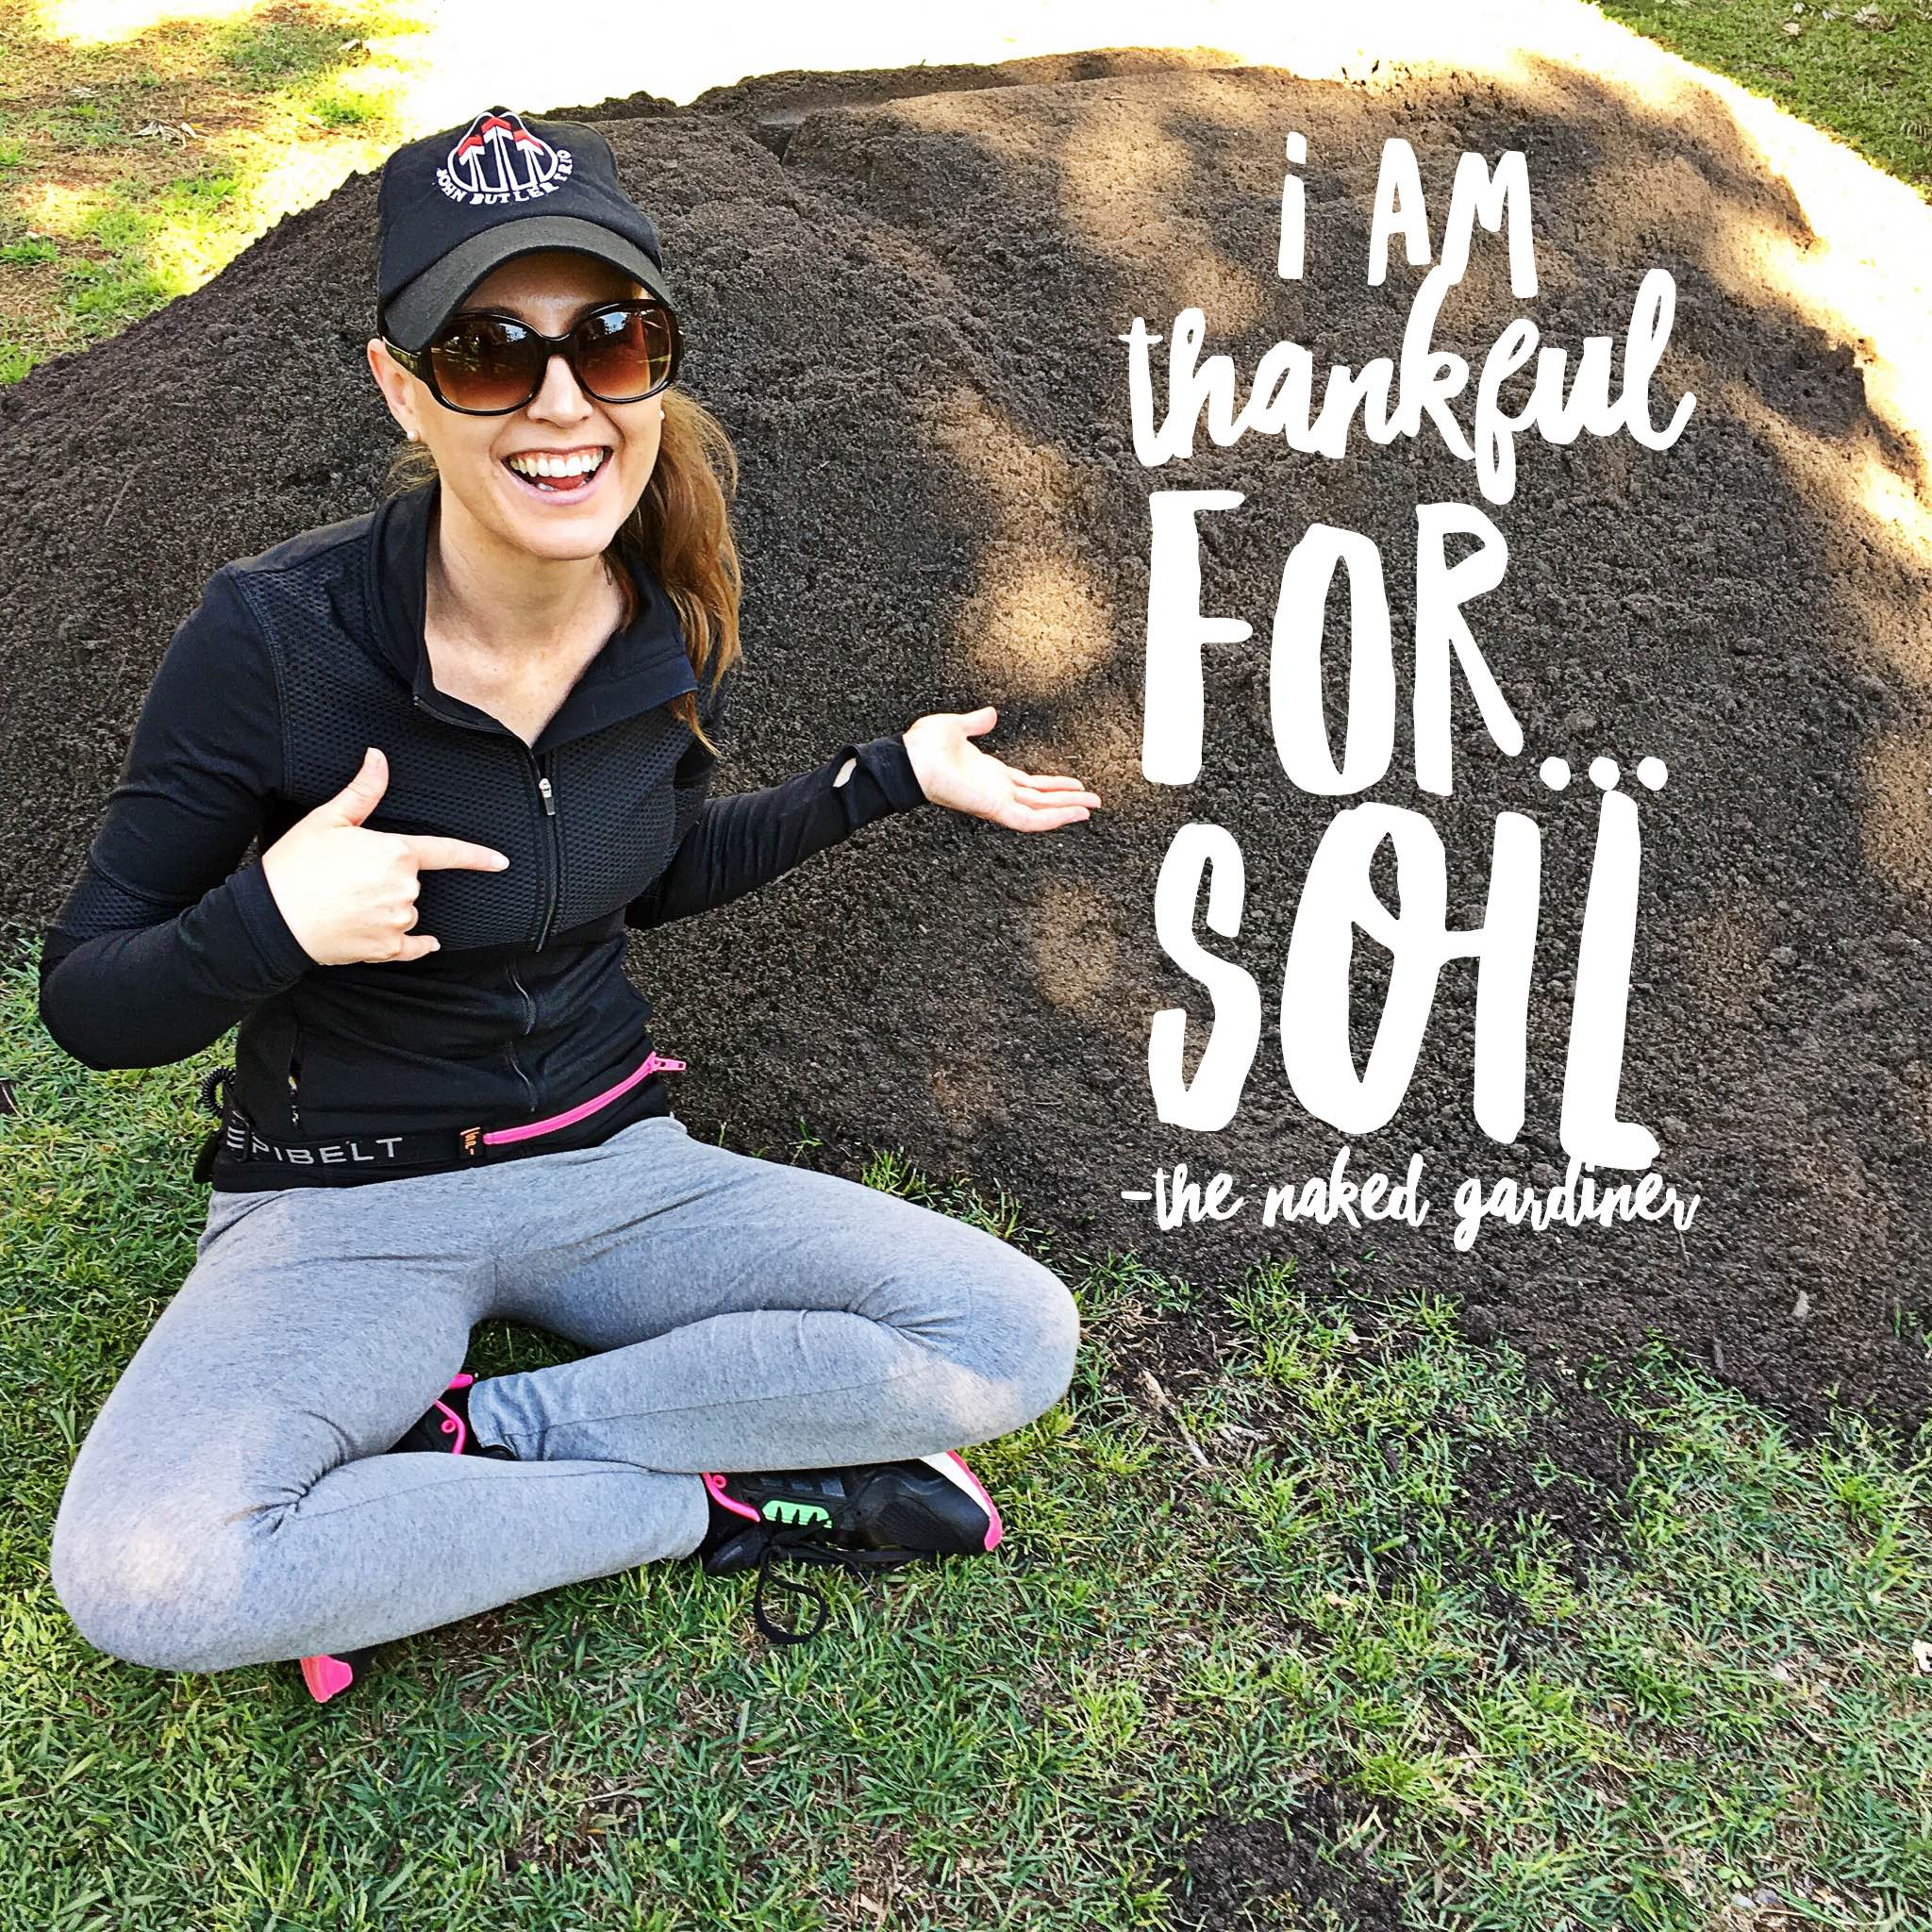 thankful-thursdays-soil-the-naked-gardiner-kathy-gardiner